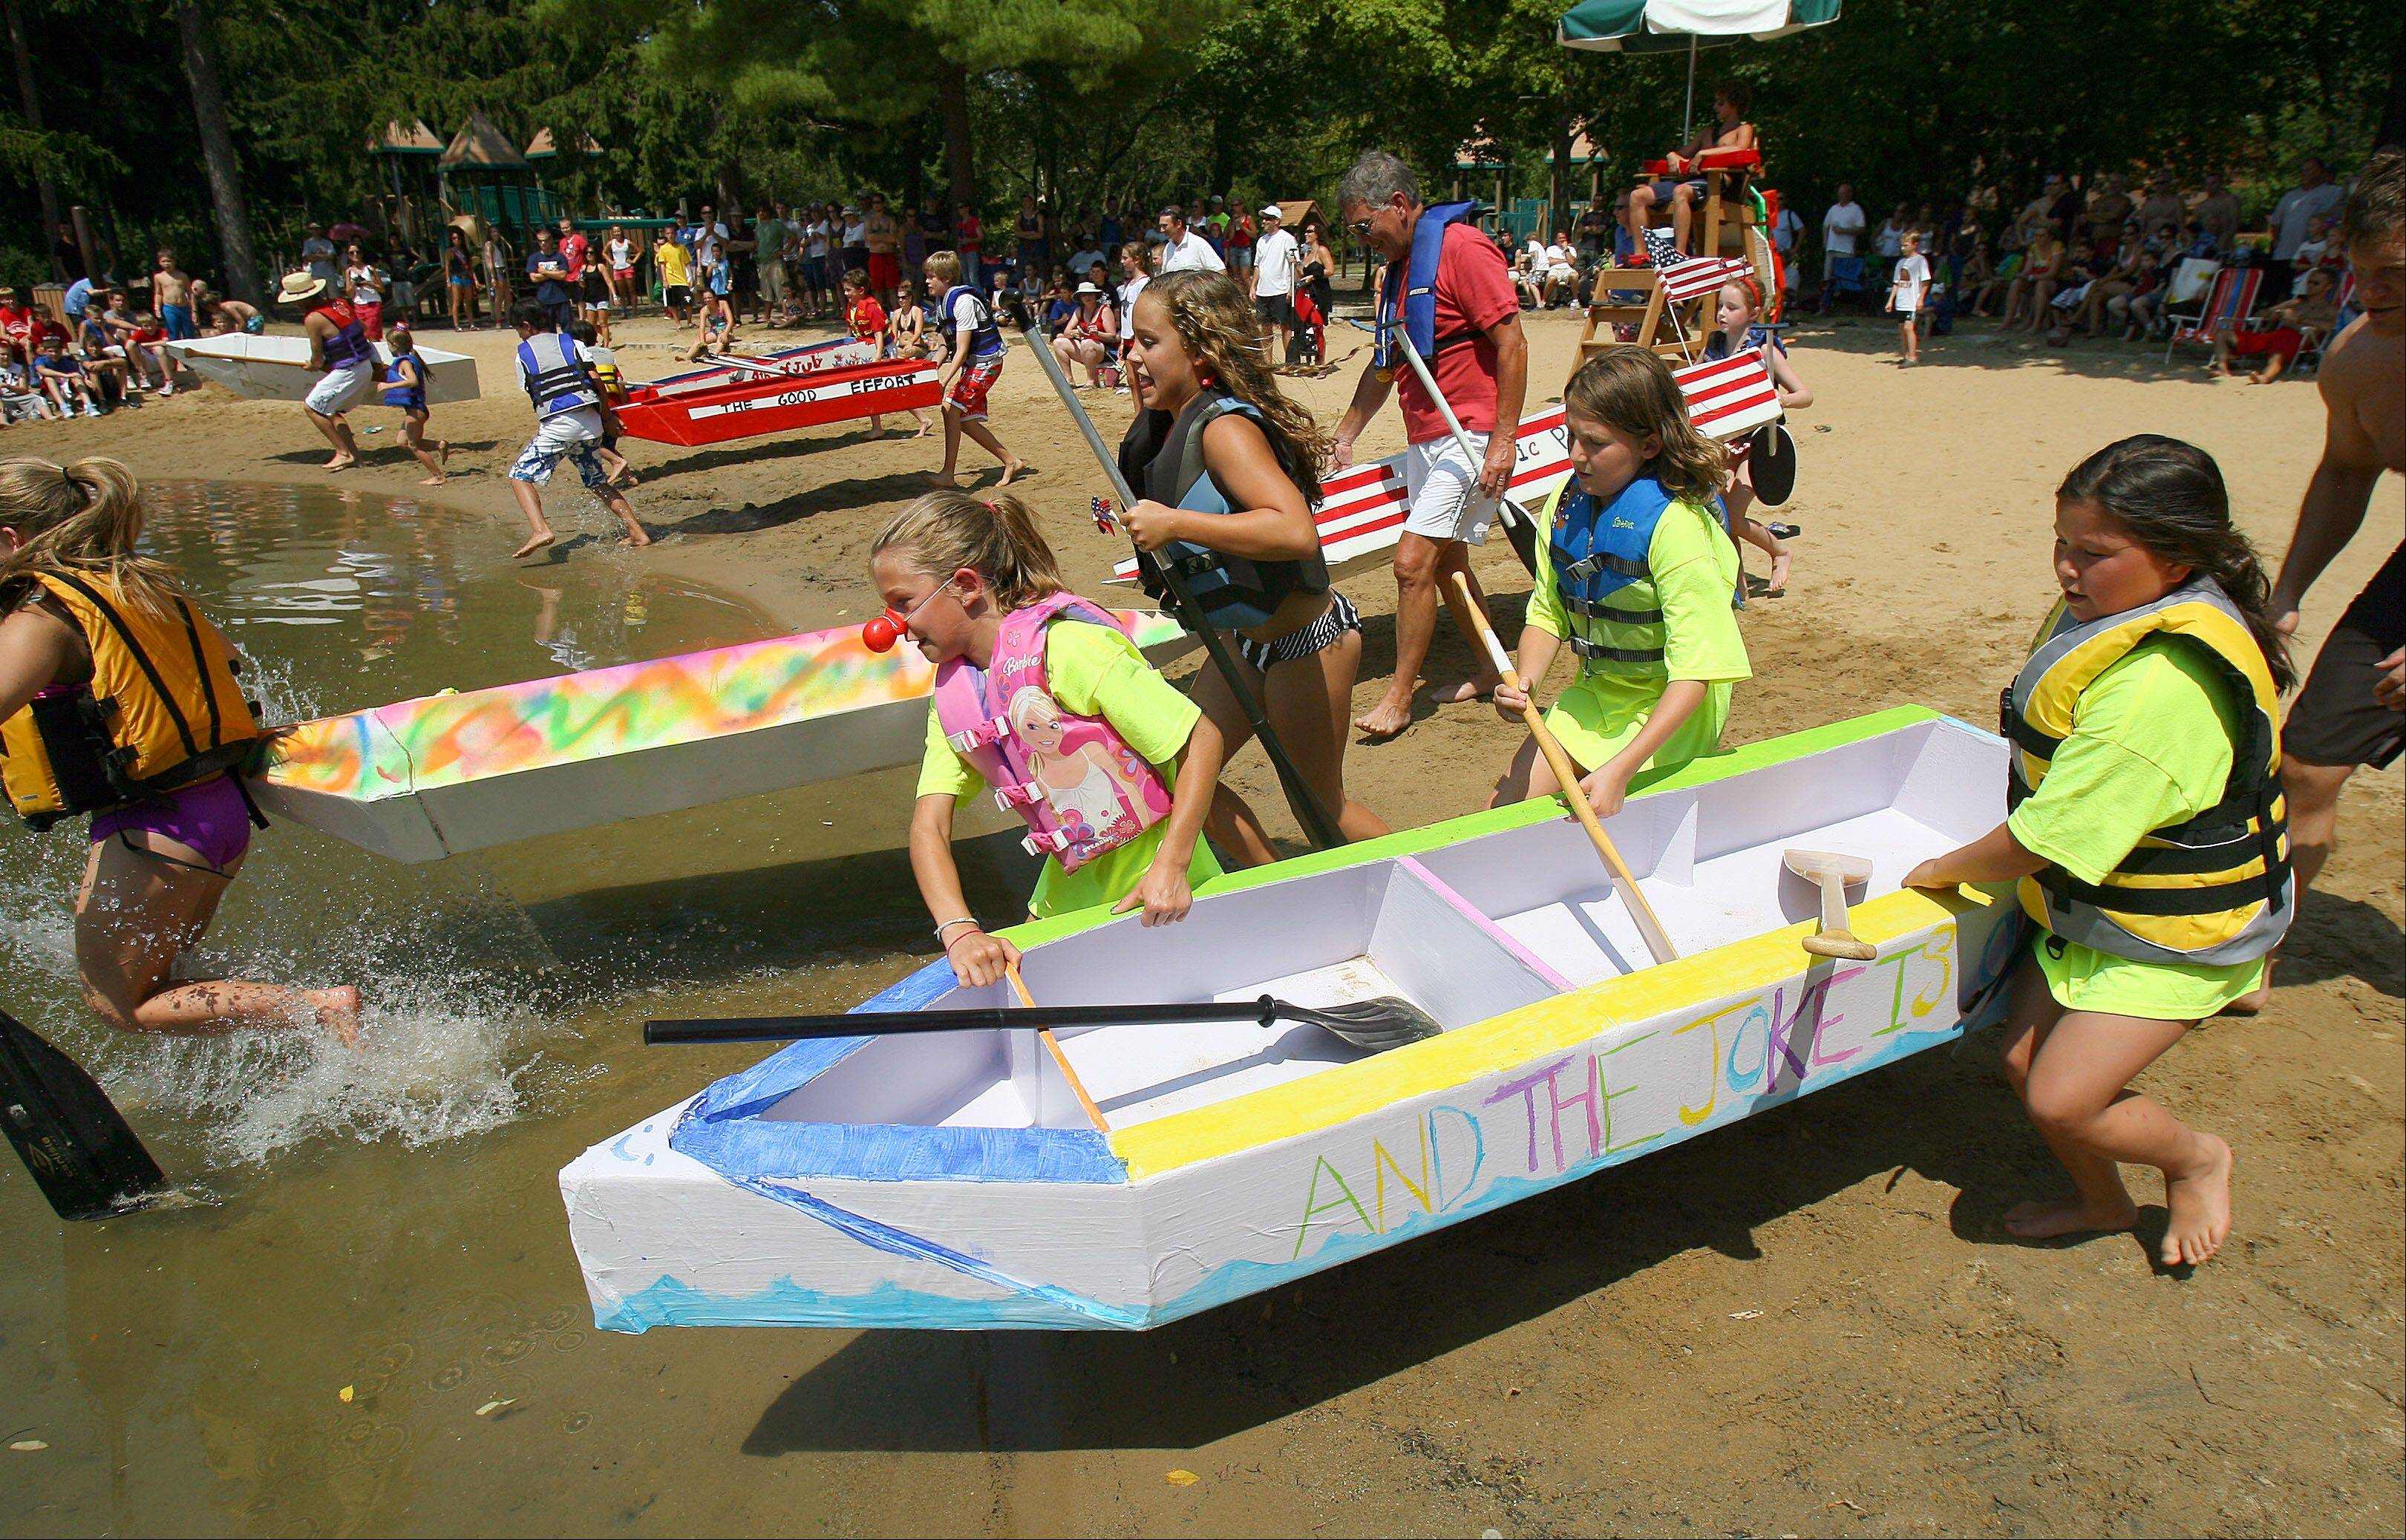 Racers dash for the water during a cardboard boat regatta at Lincolnshire's Red White and Boom 2012 event Wedensday at Spring Lake Park.